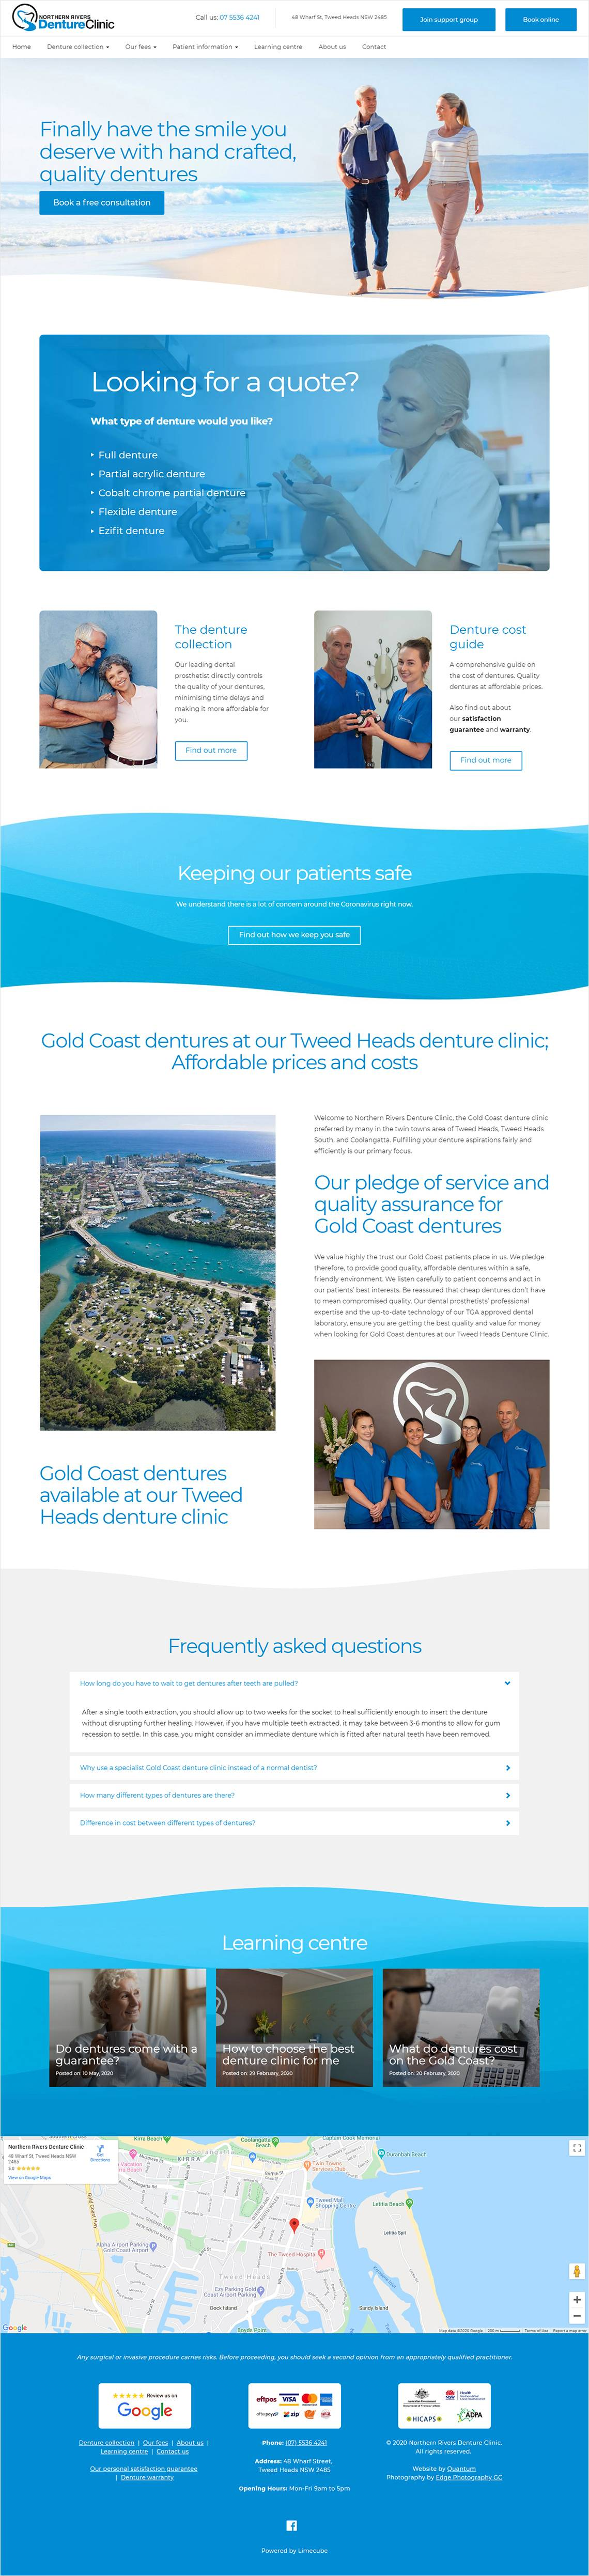 Northern Rivers Denture Clinic Full Home Page